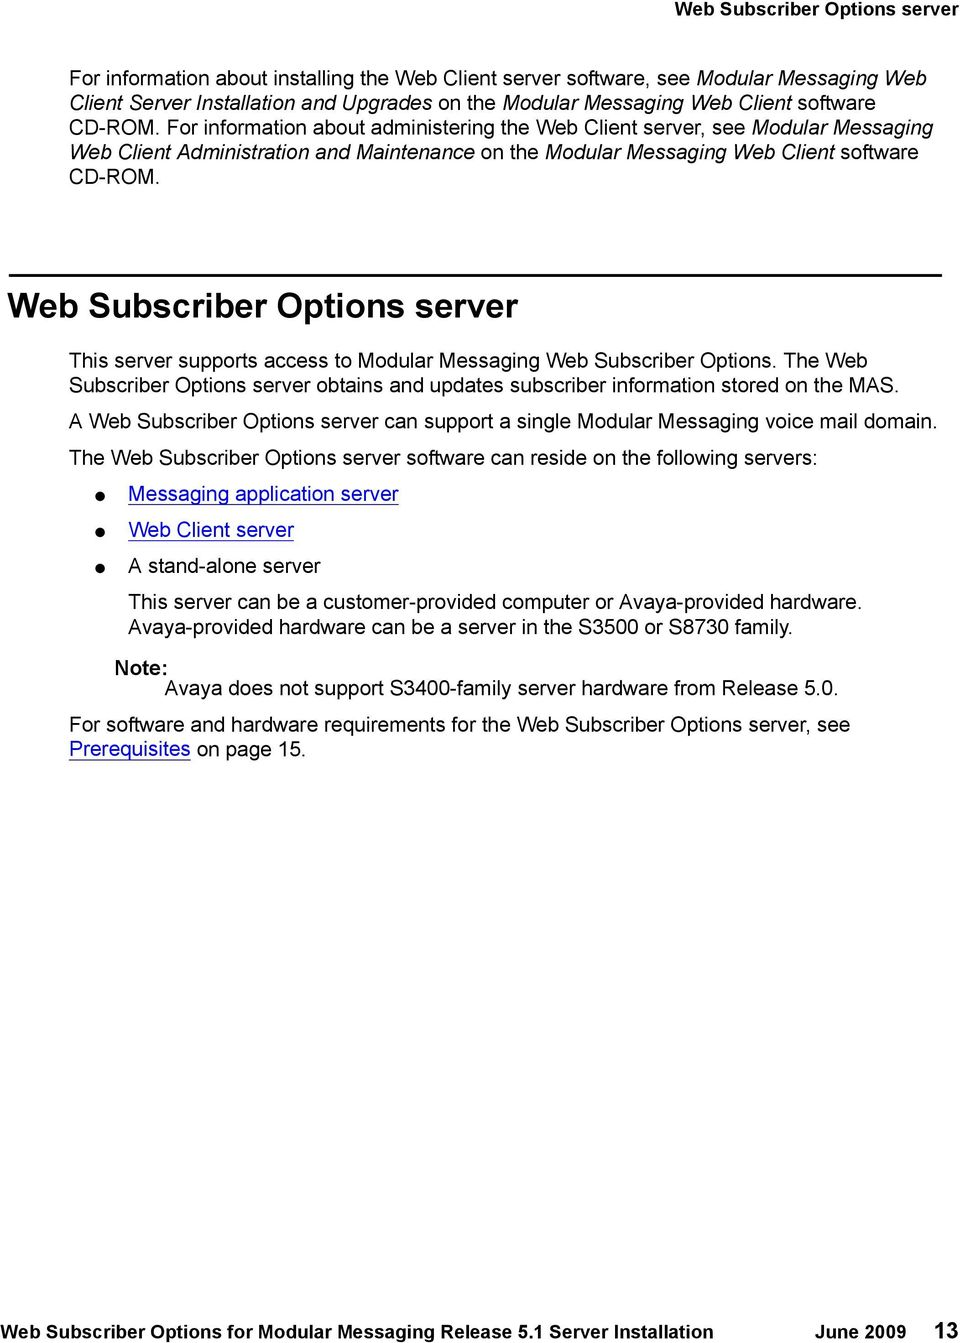 Web Subscriber Options server This server supports access to Modular Messaging Web Subscriber Options. The Web Subscriber Options server obtains and updates subscriber information stored on the MAS.